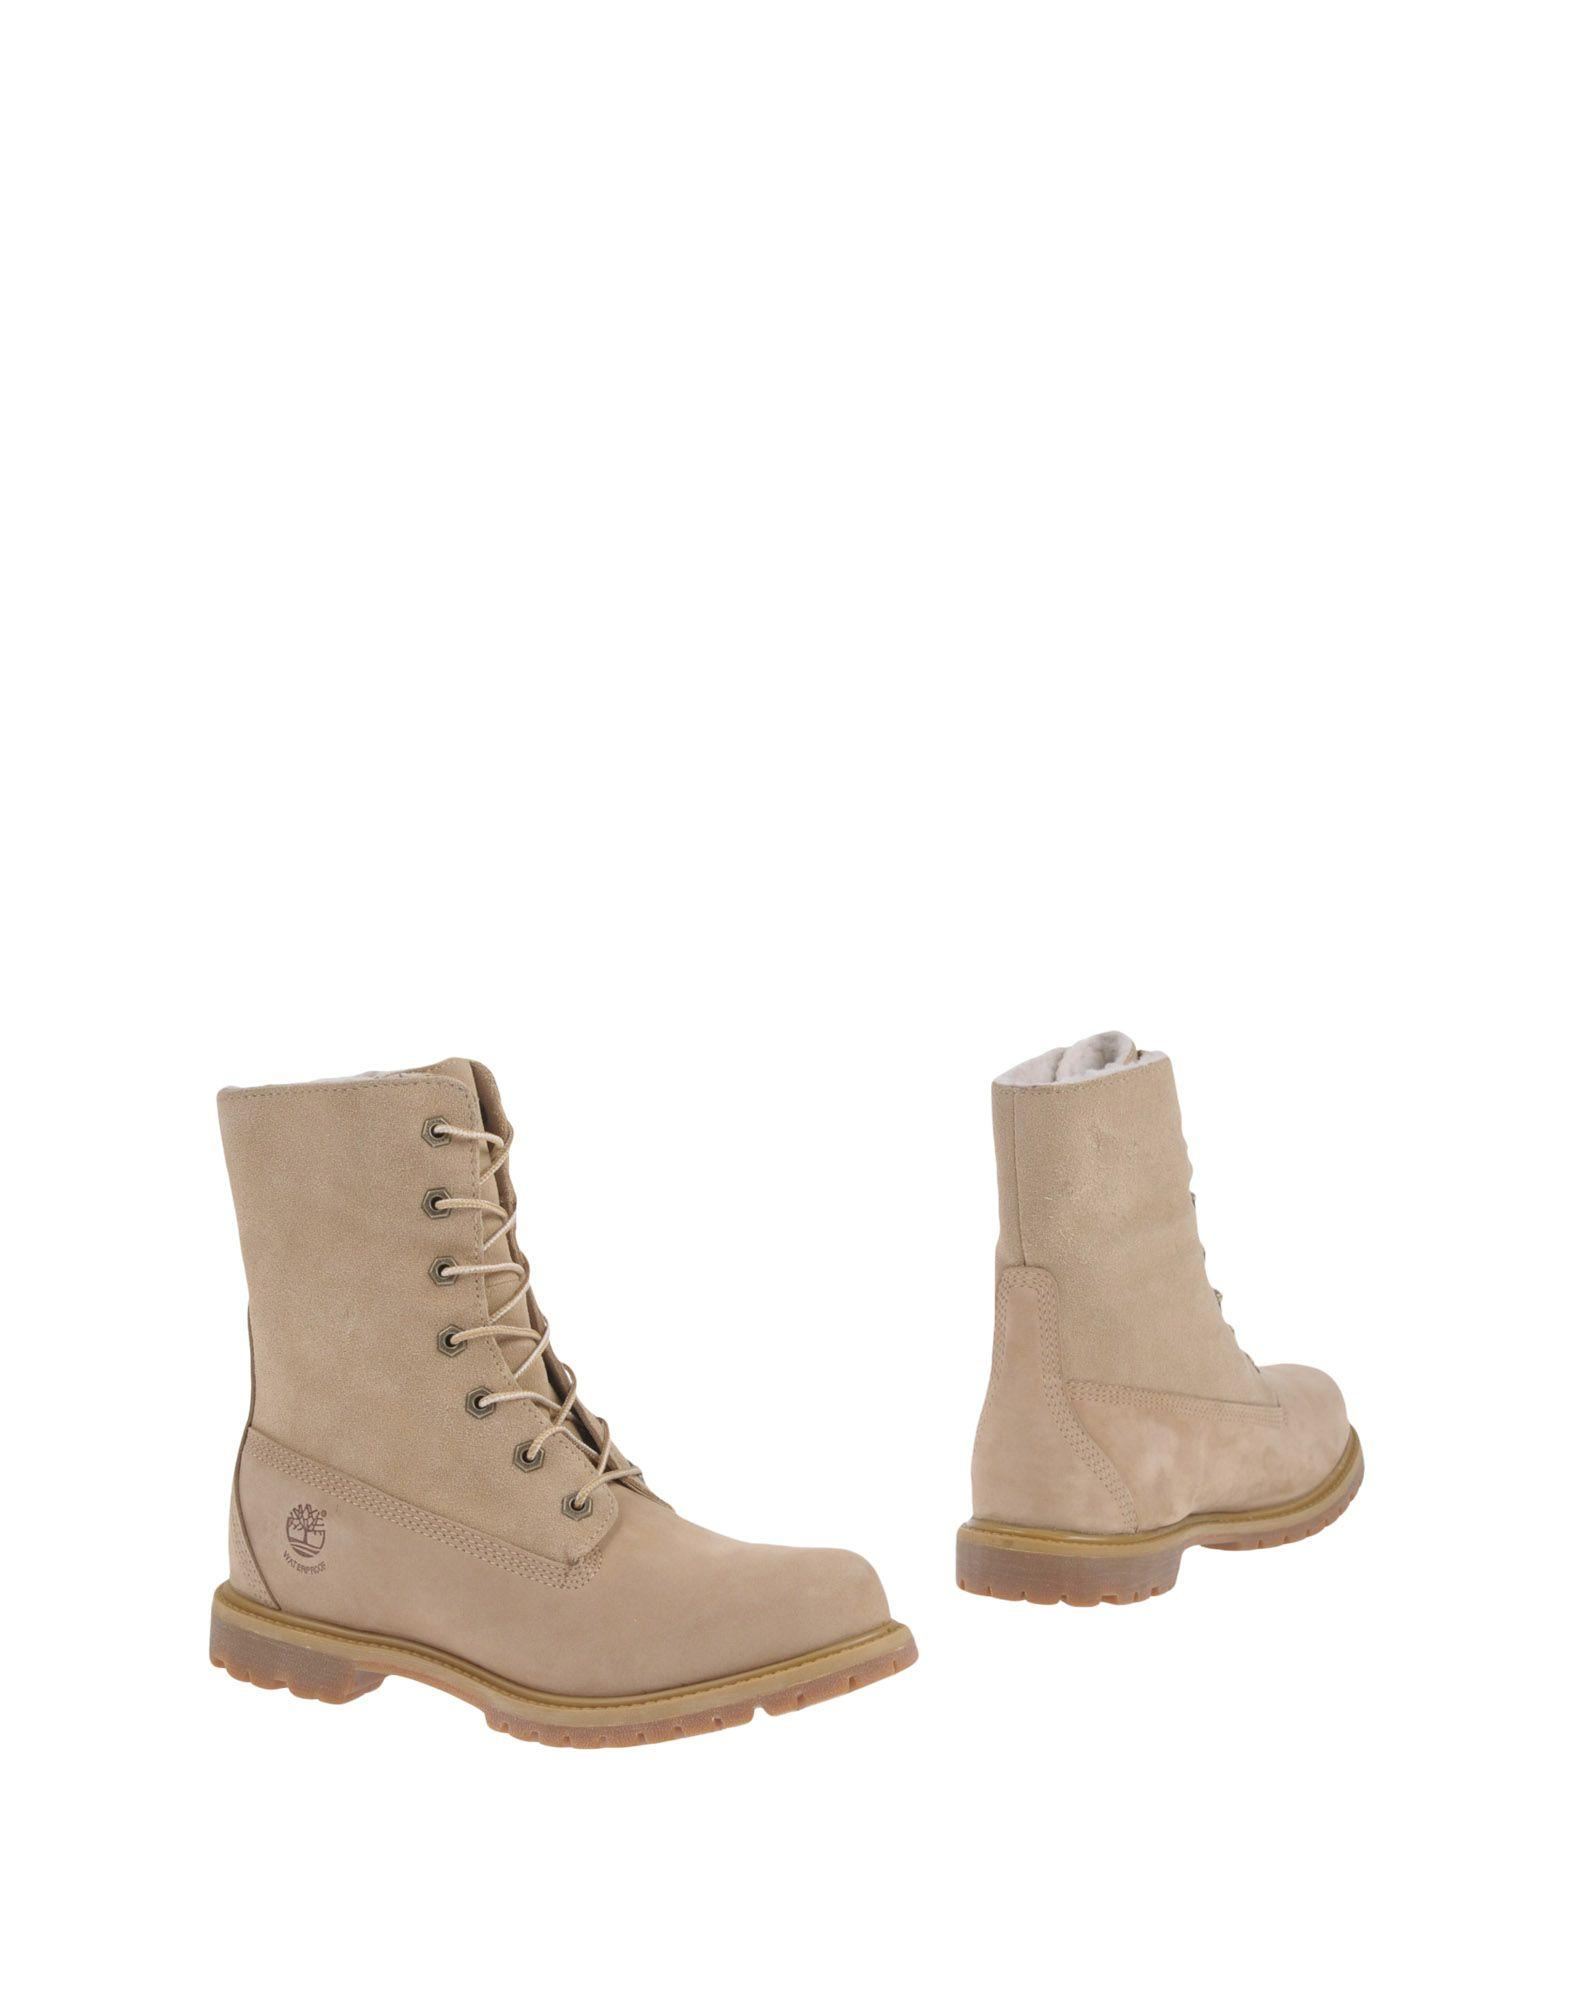 Timberland Ankle Boots In Beige